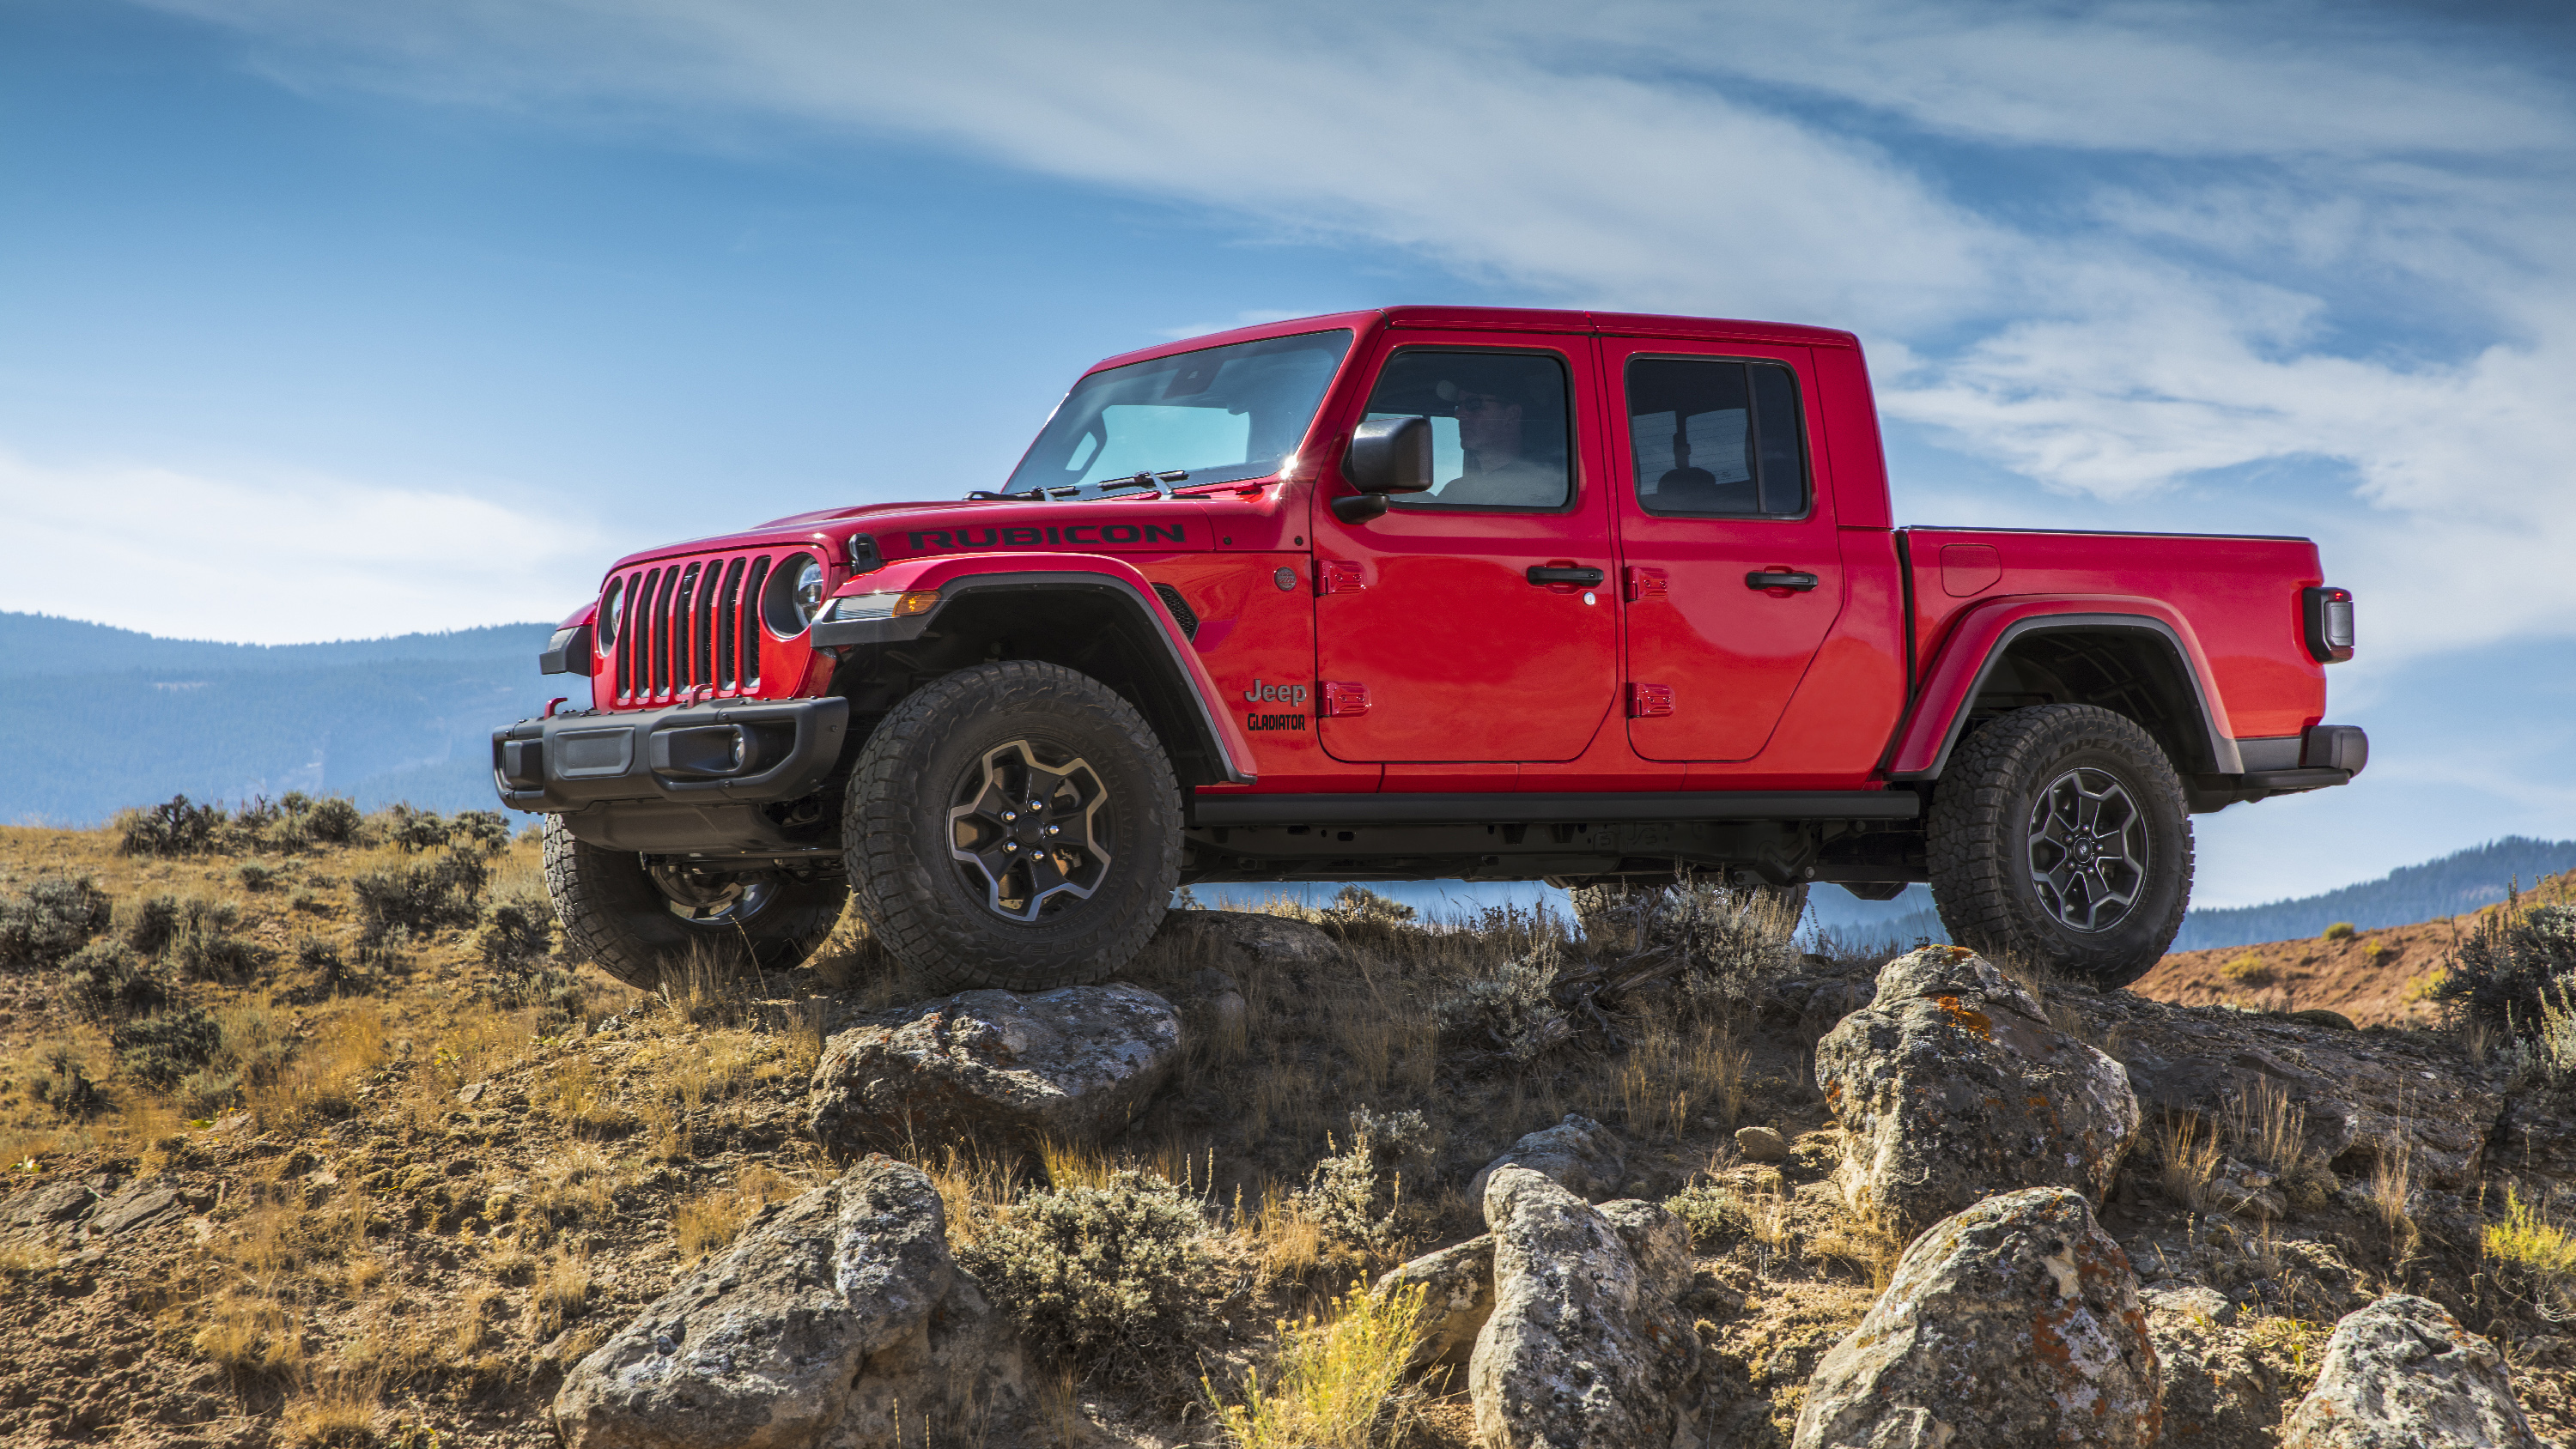 2020 Jeep Gladiator Rubicon Wallpaper HD Car Wallpapers ID 11593 3000x1688